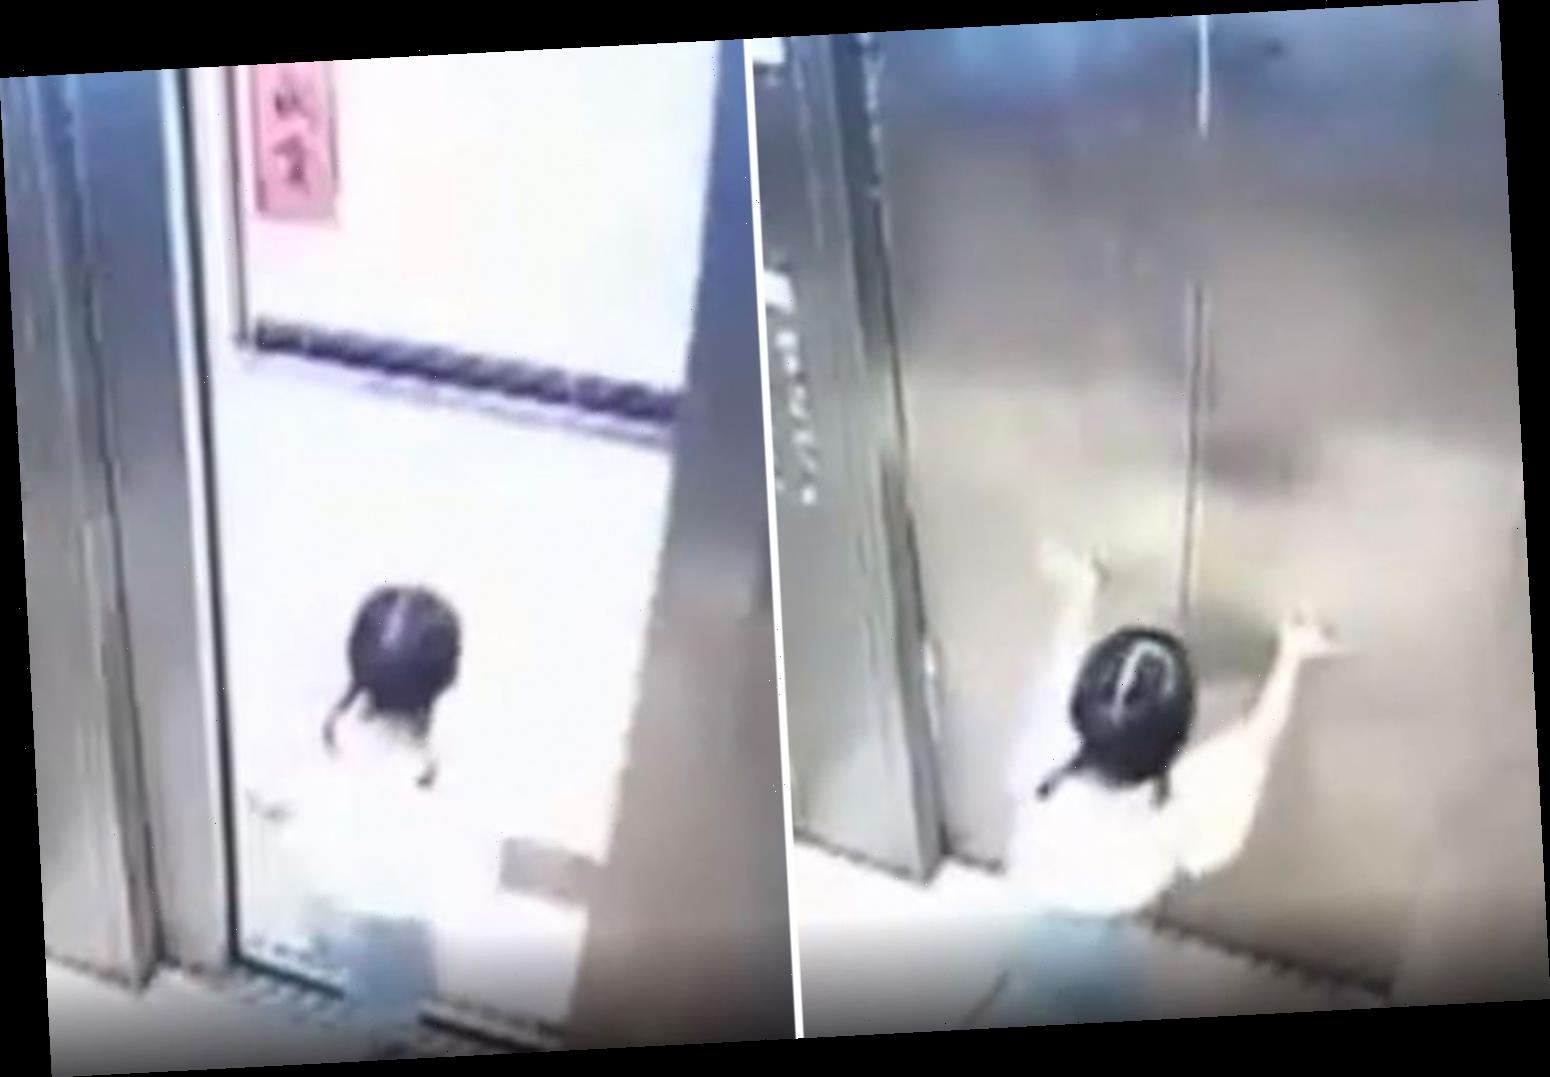 Girl, 3, falls to her death from 8th storey window trying to find grandma after pair got separated in lift